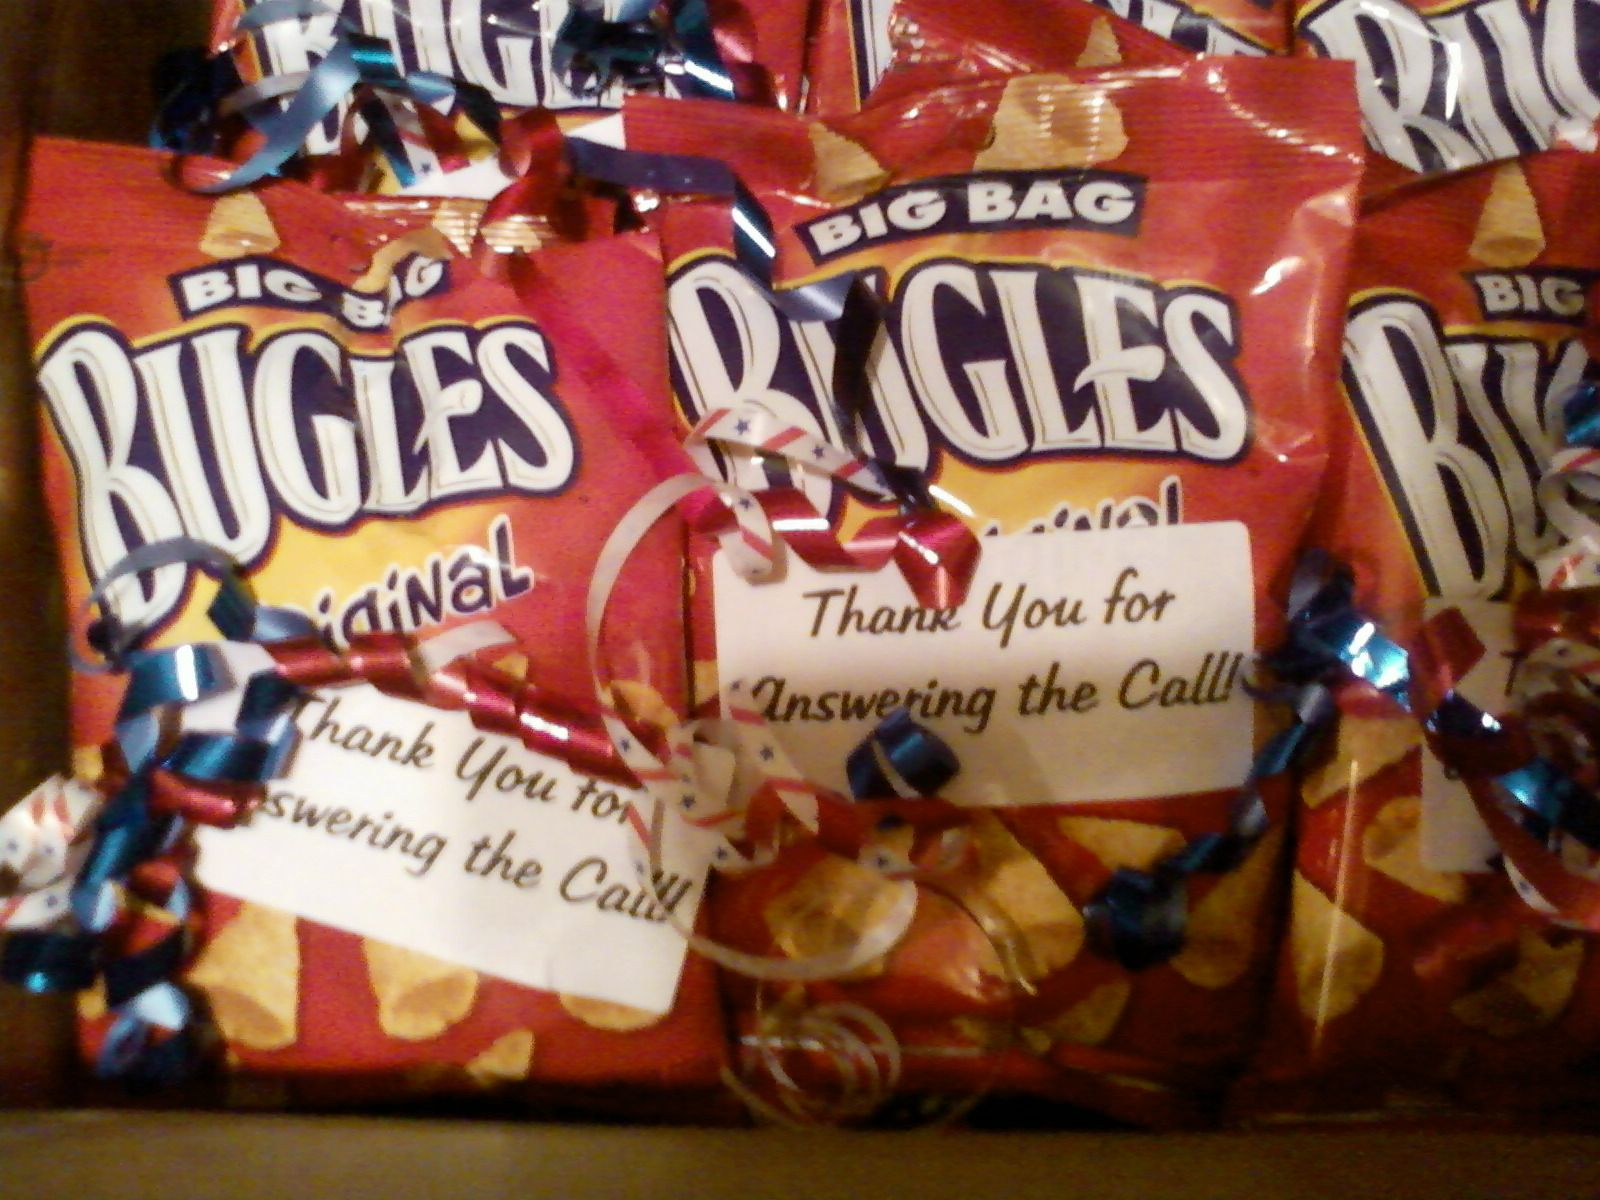 veteran's day treats for vets! buglesthank you for answering the